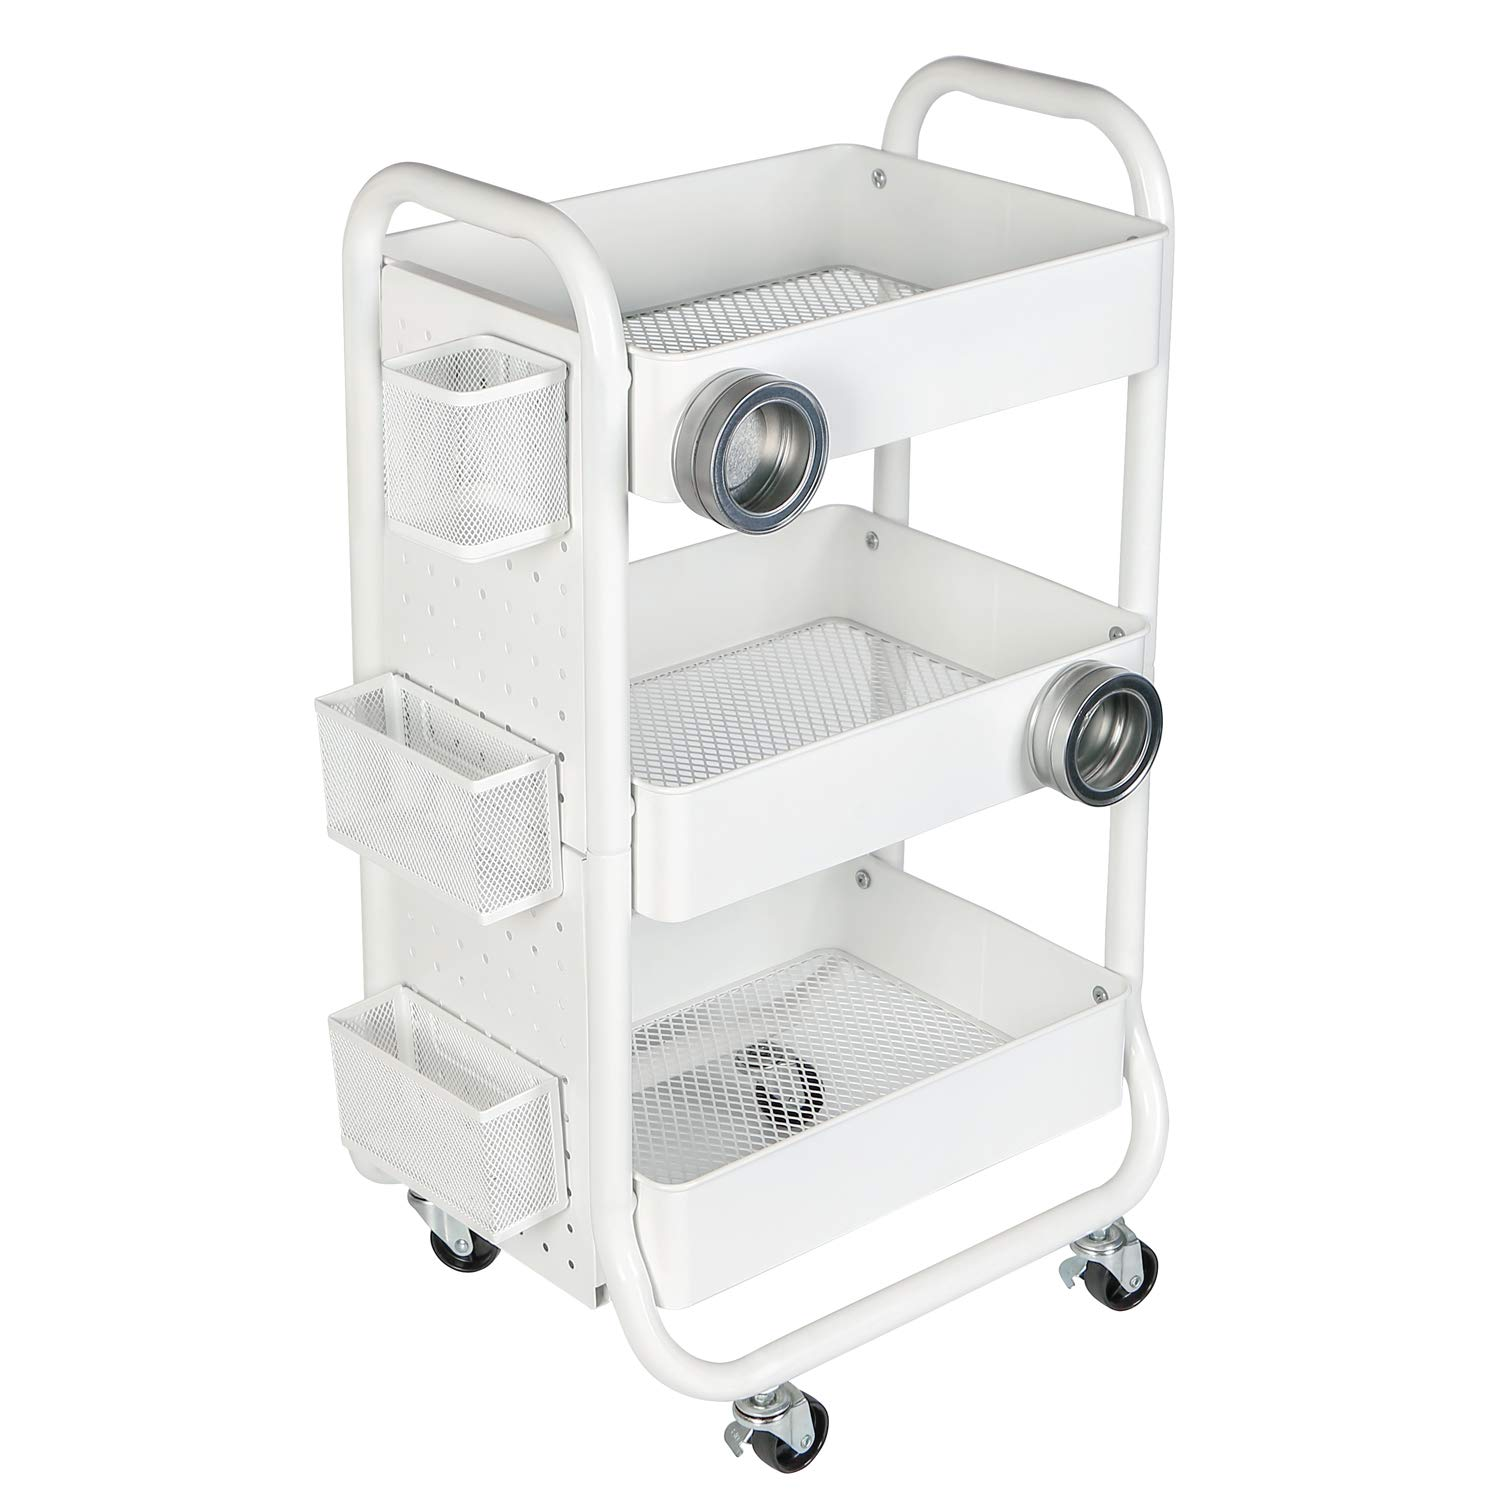 3-tier metal Rolling Storage carrello multiuso con manico White. DESIGNA